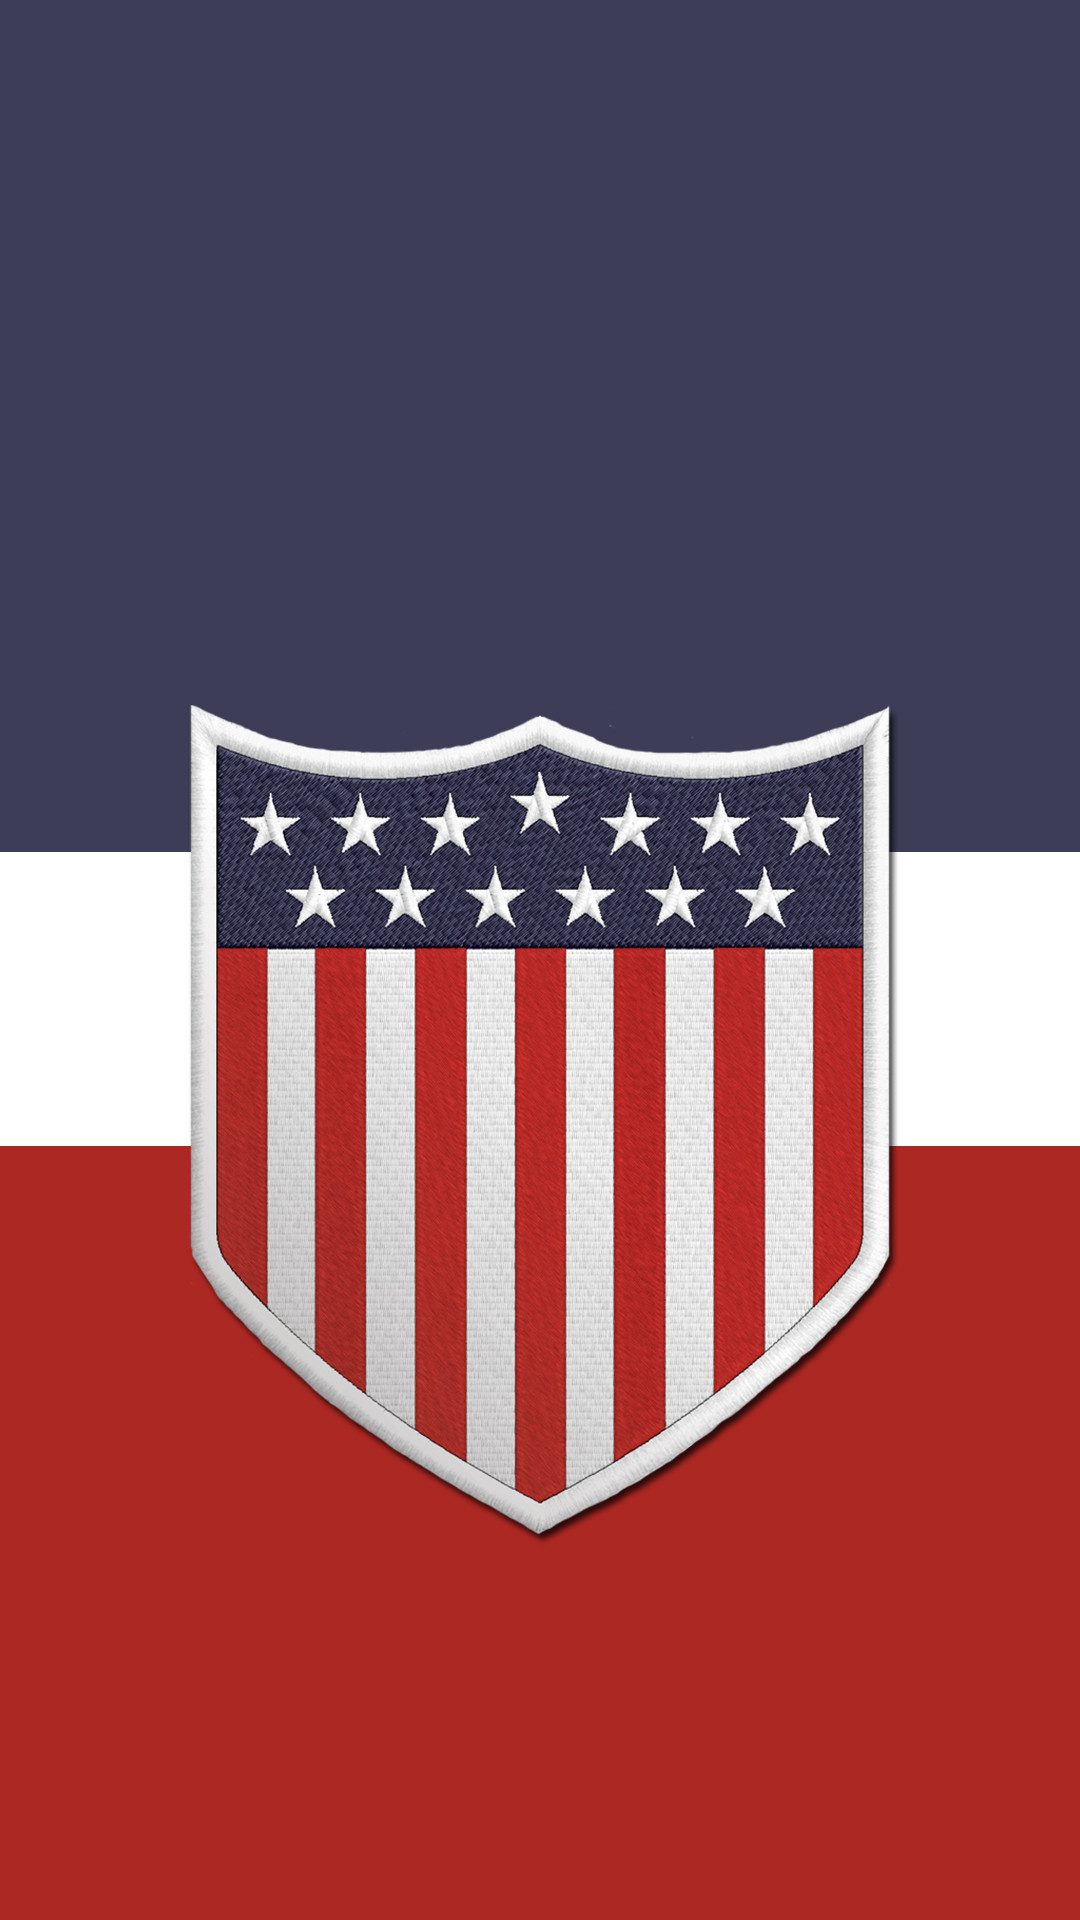 Usa Hockey Iphone Wallpaper 64 Images